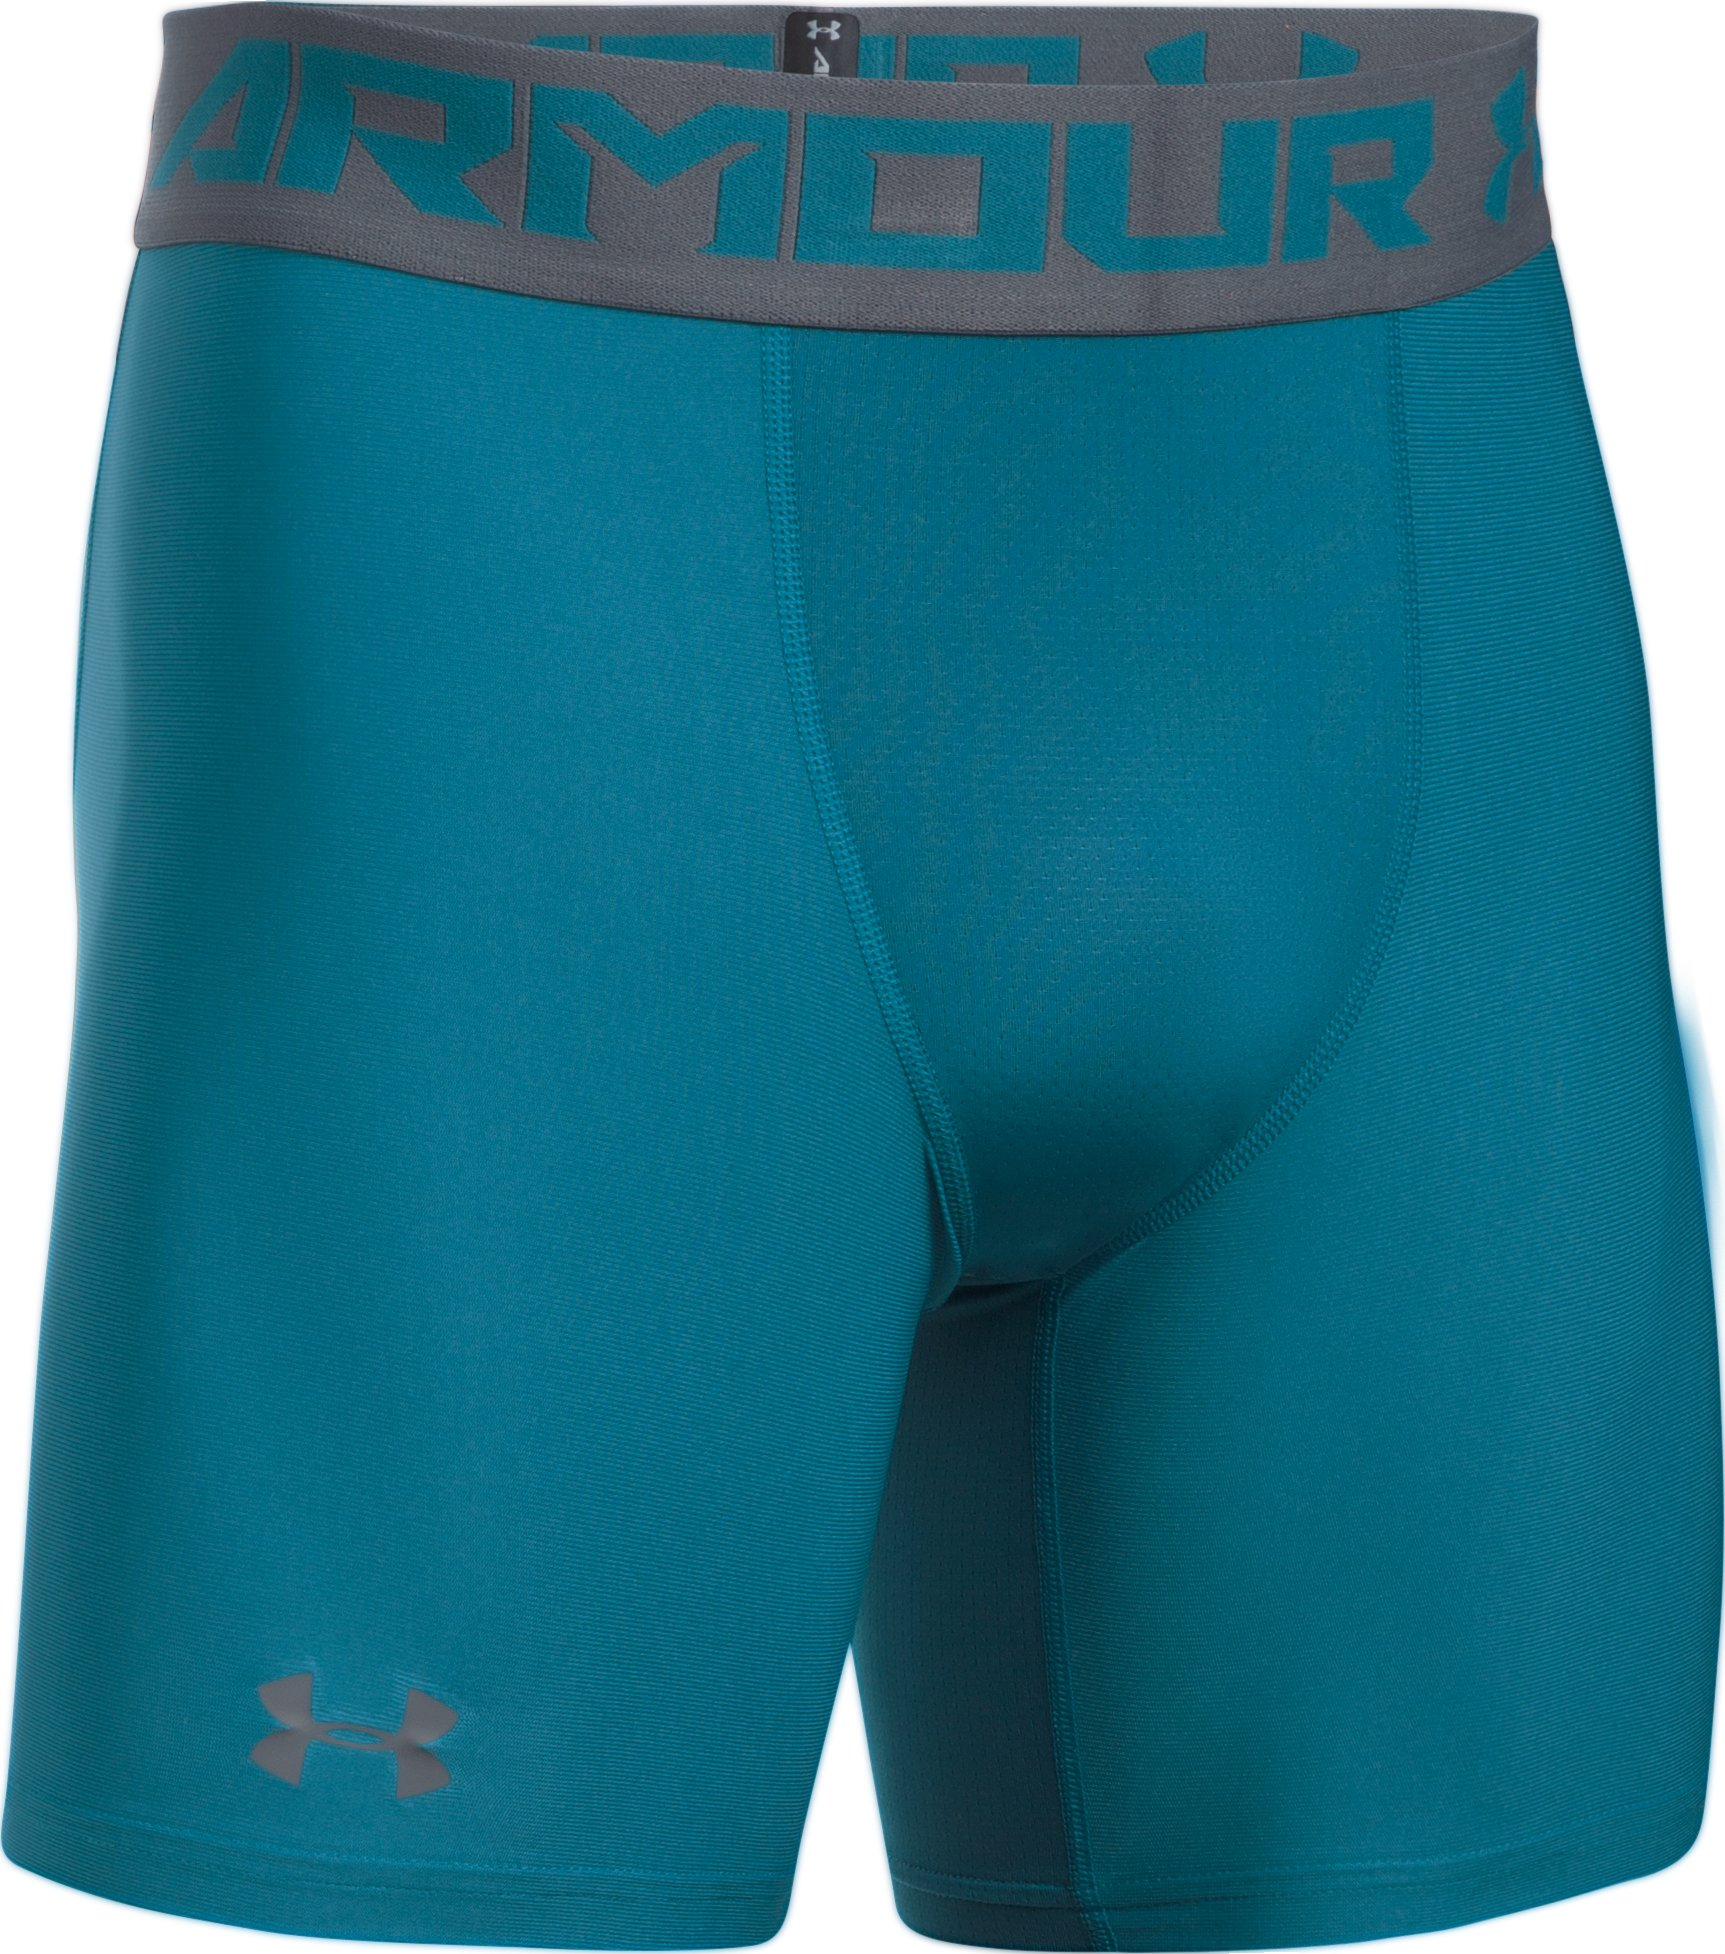 Men's HeatGear® Armour Mid Compression Shorts, BAYOU BLUE, undefined